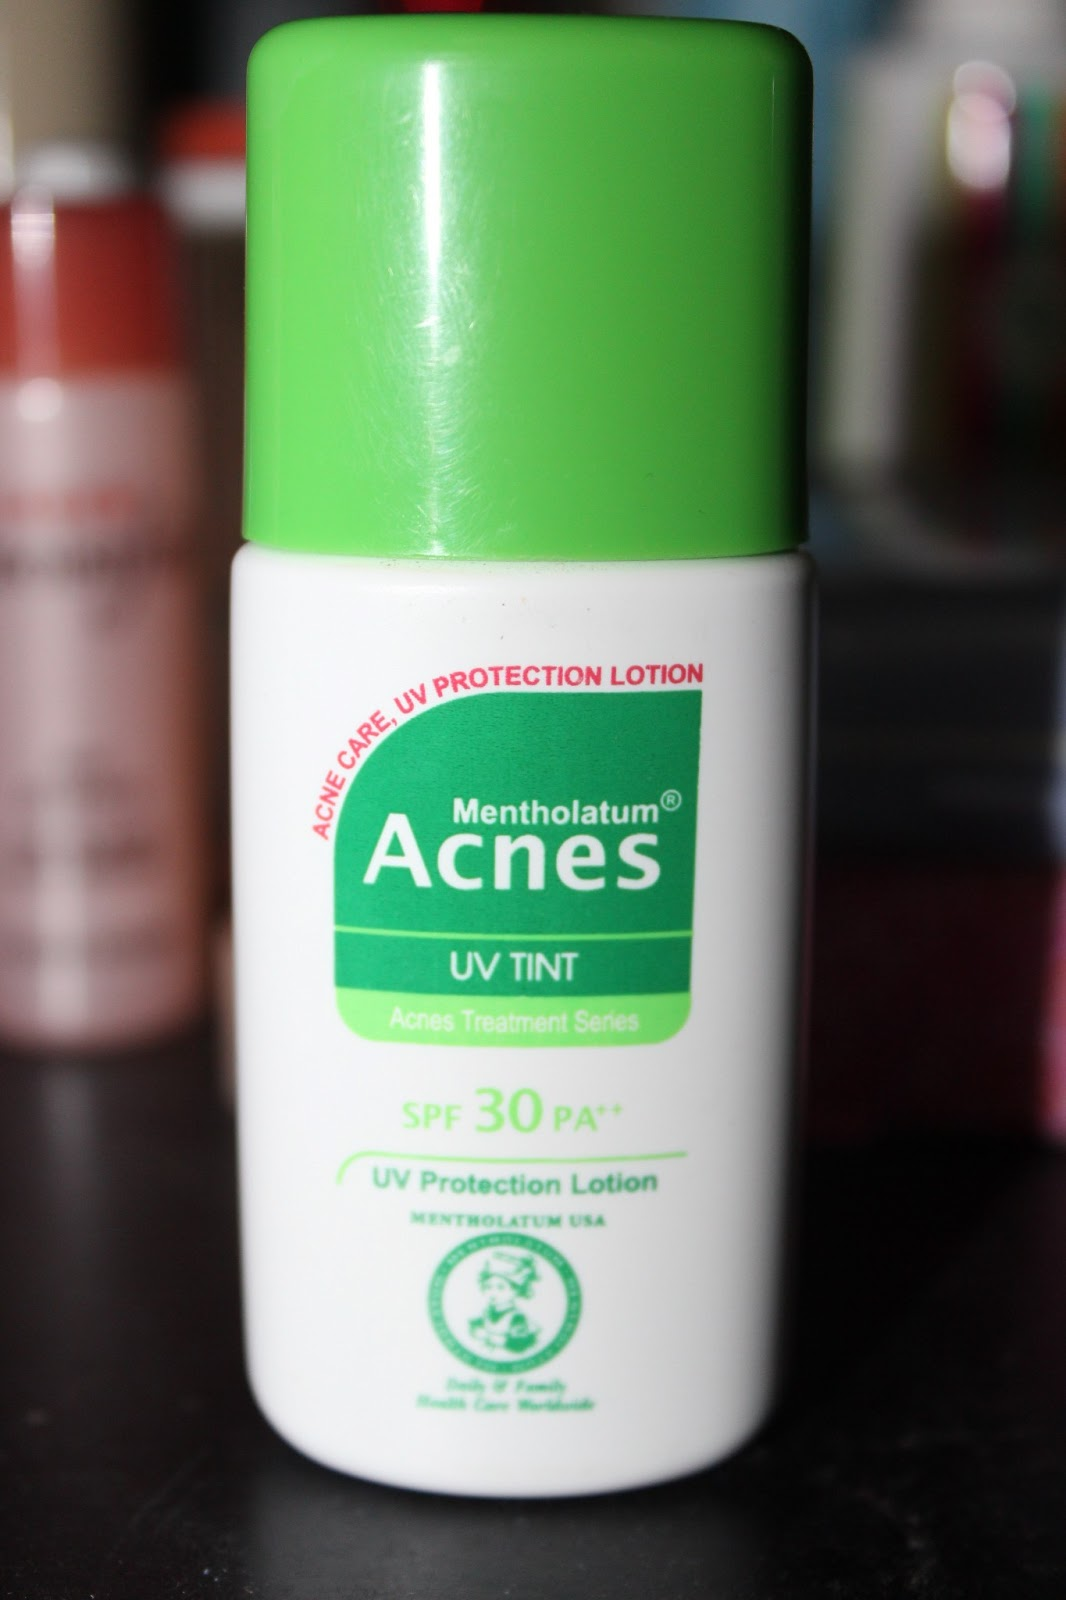 Review Acnes Uv Tint : review, acnes, Daily, Review, Acnes, Tint., Protection, Skin., MYWORLDHEPPY